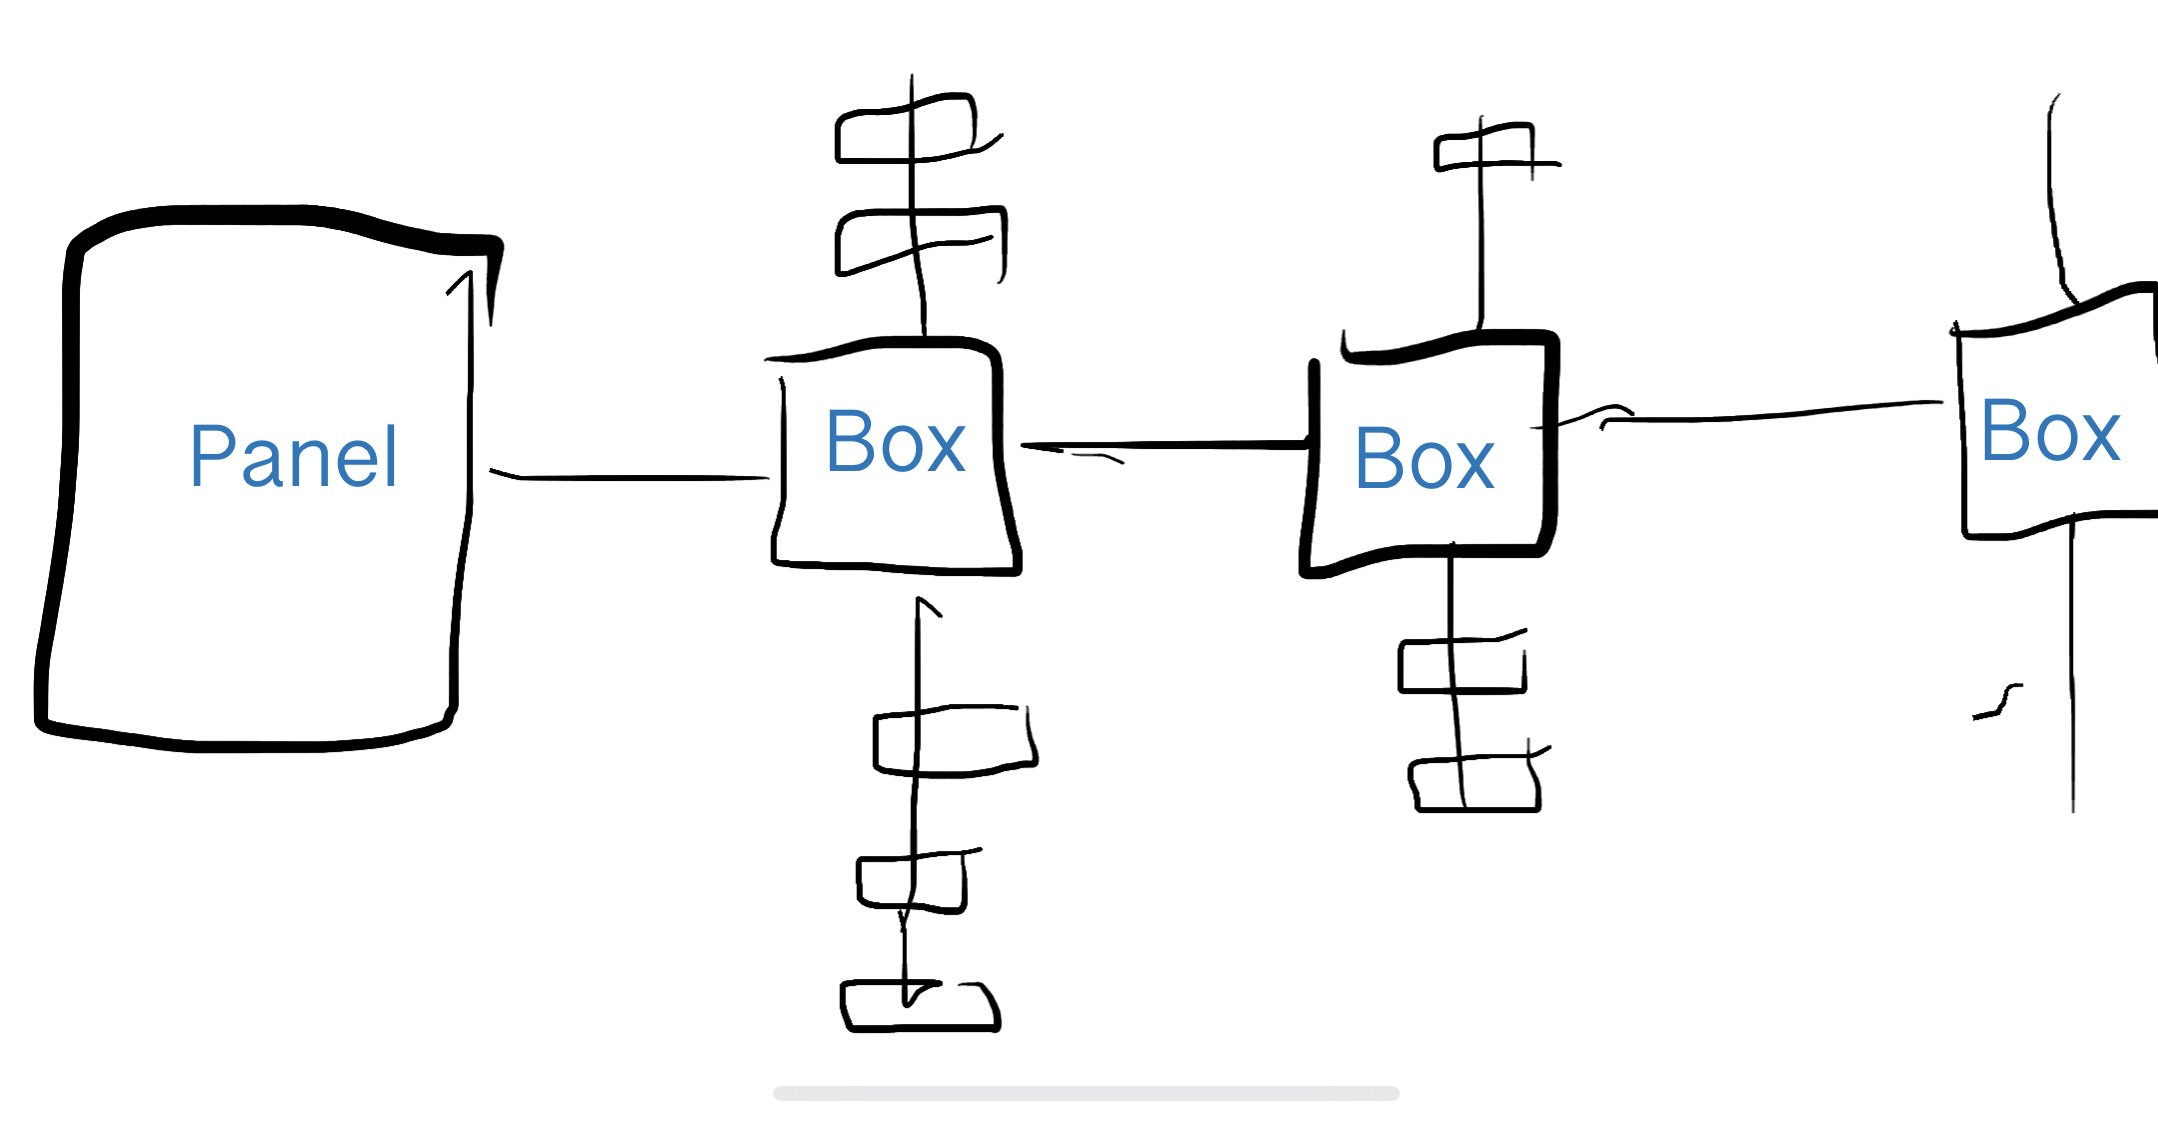 example main circuit line with lots of junction boxes and branches Off of those boxes